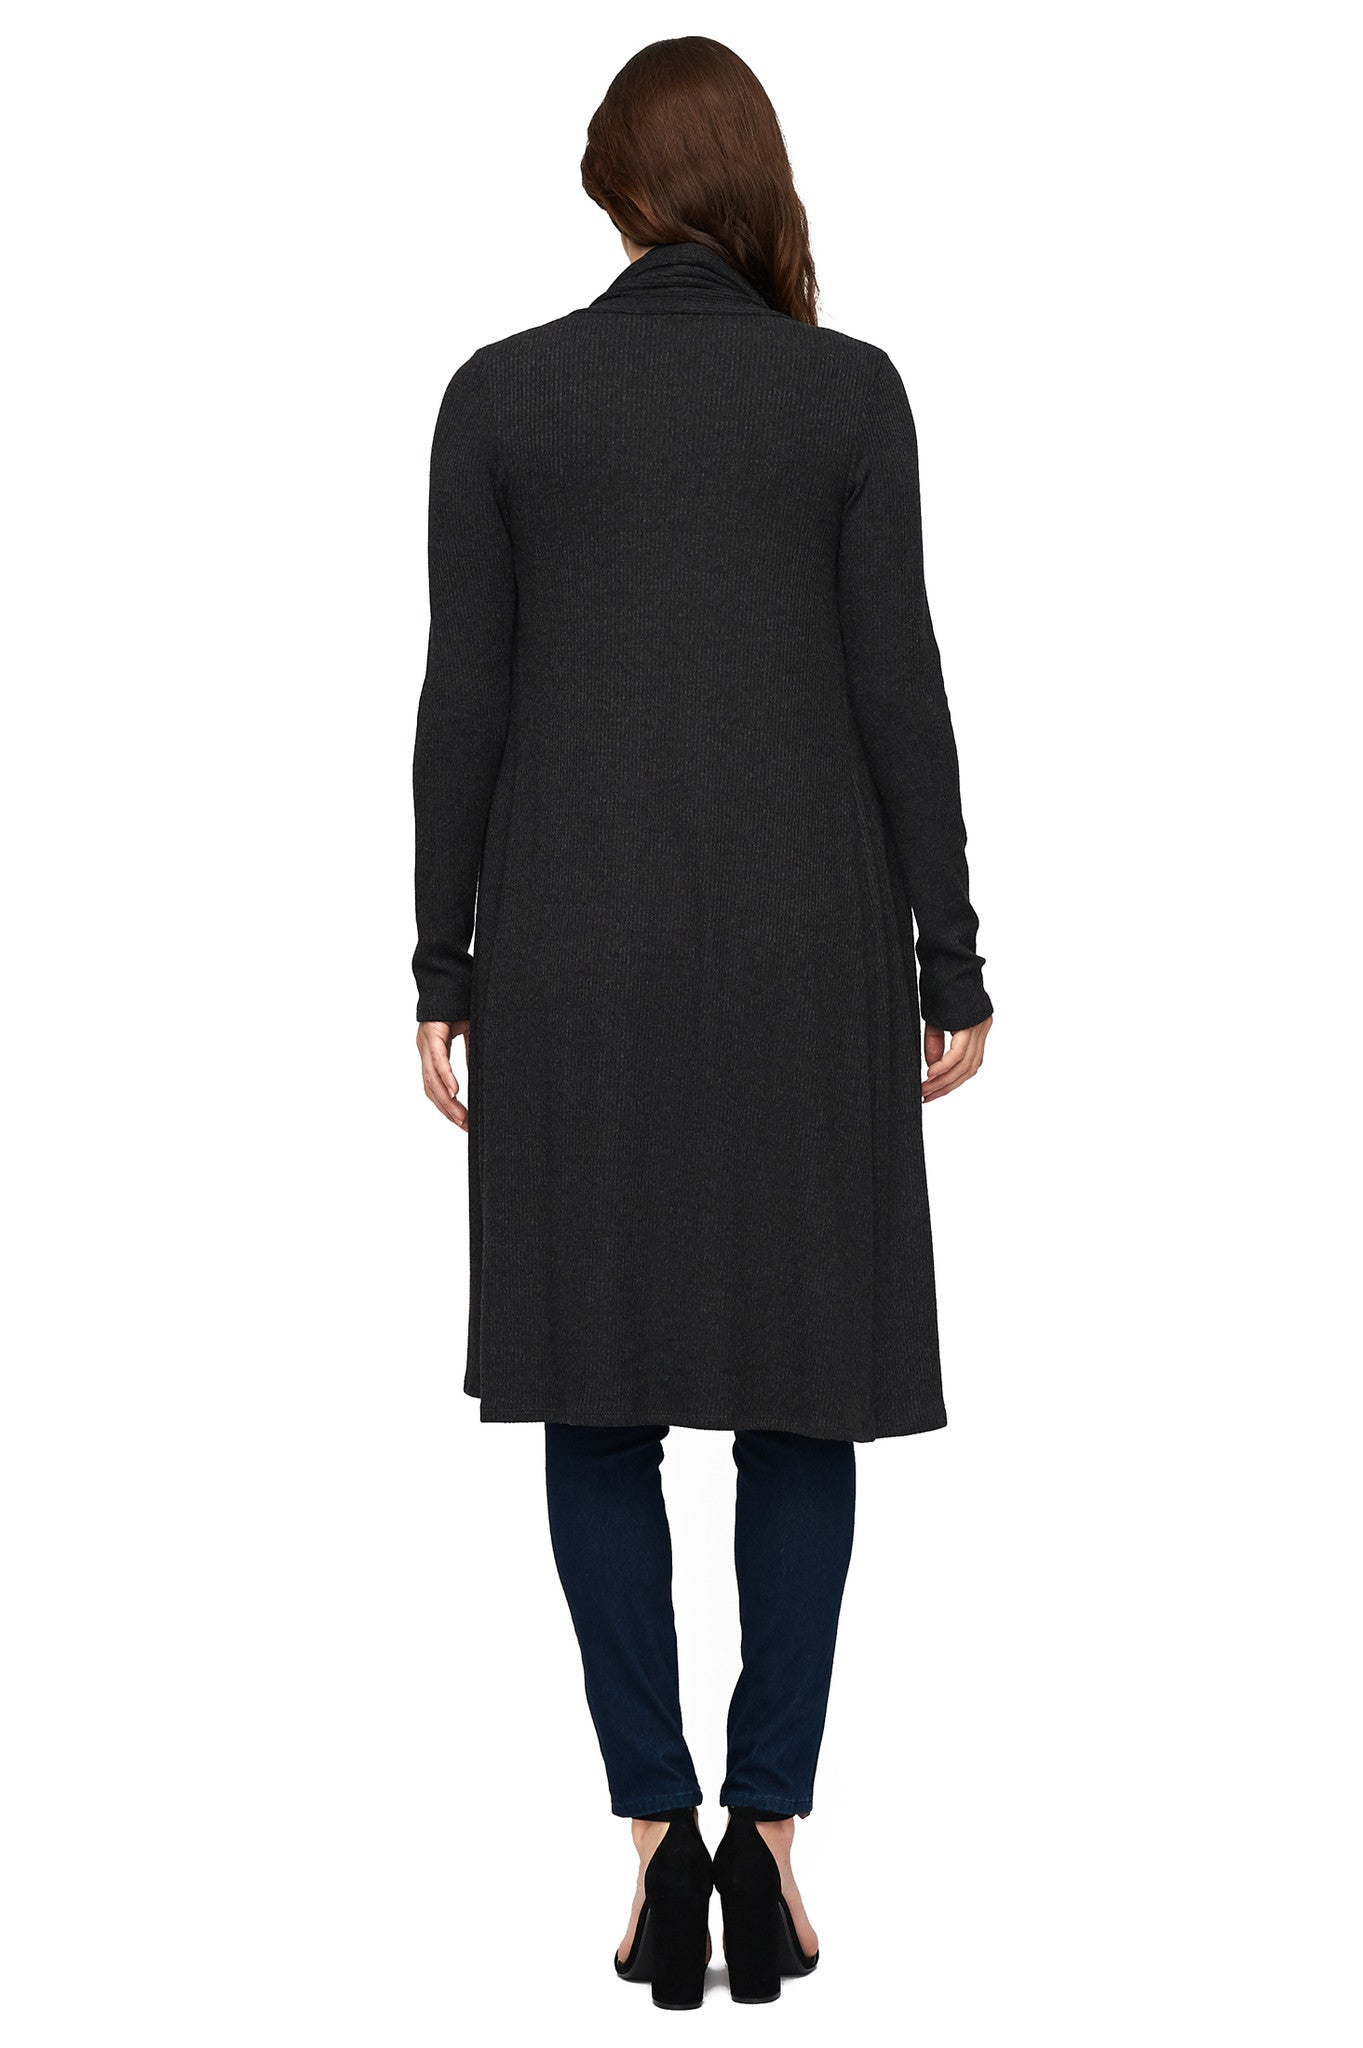 Sweater Rib Sal Coat - Charcoal